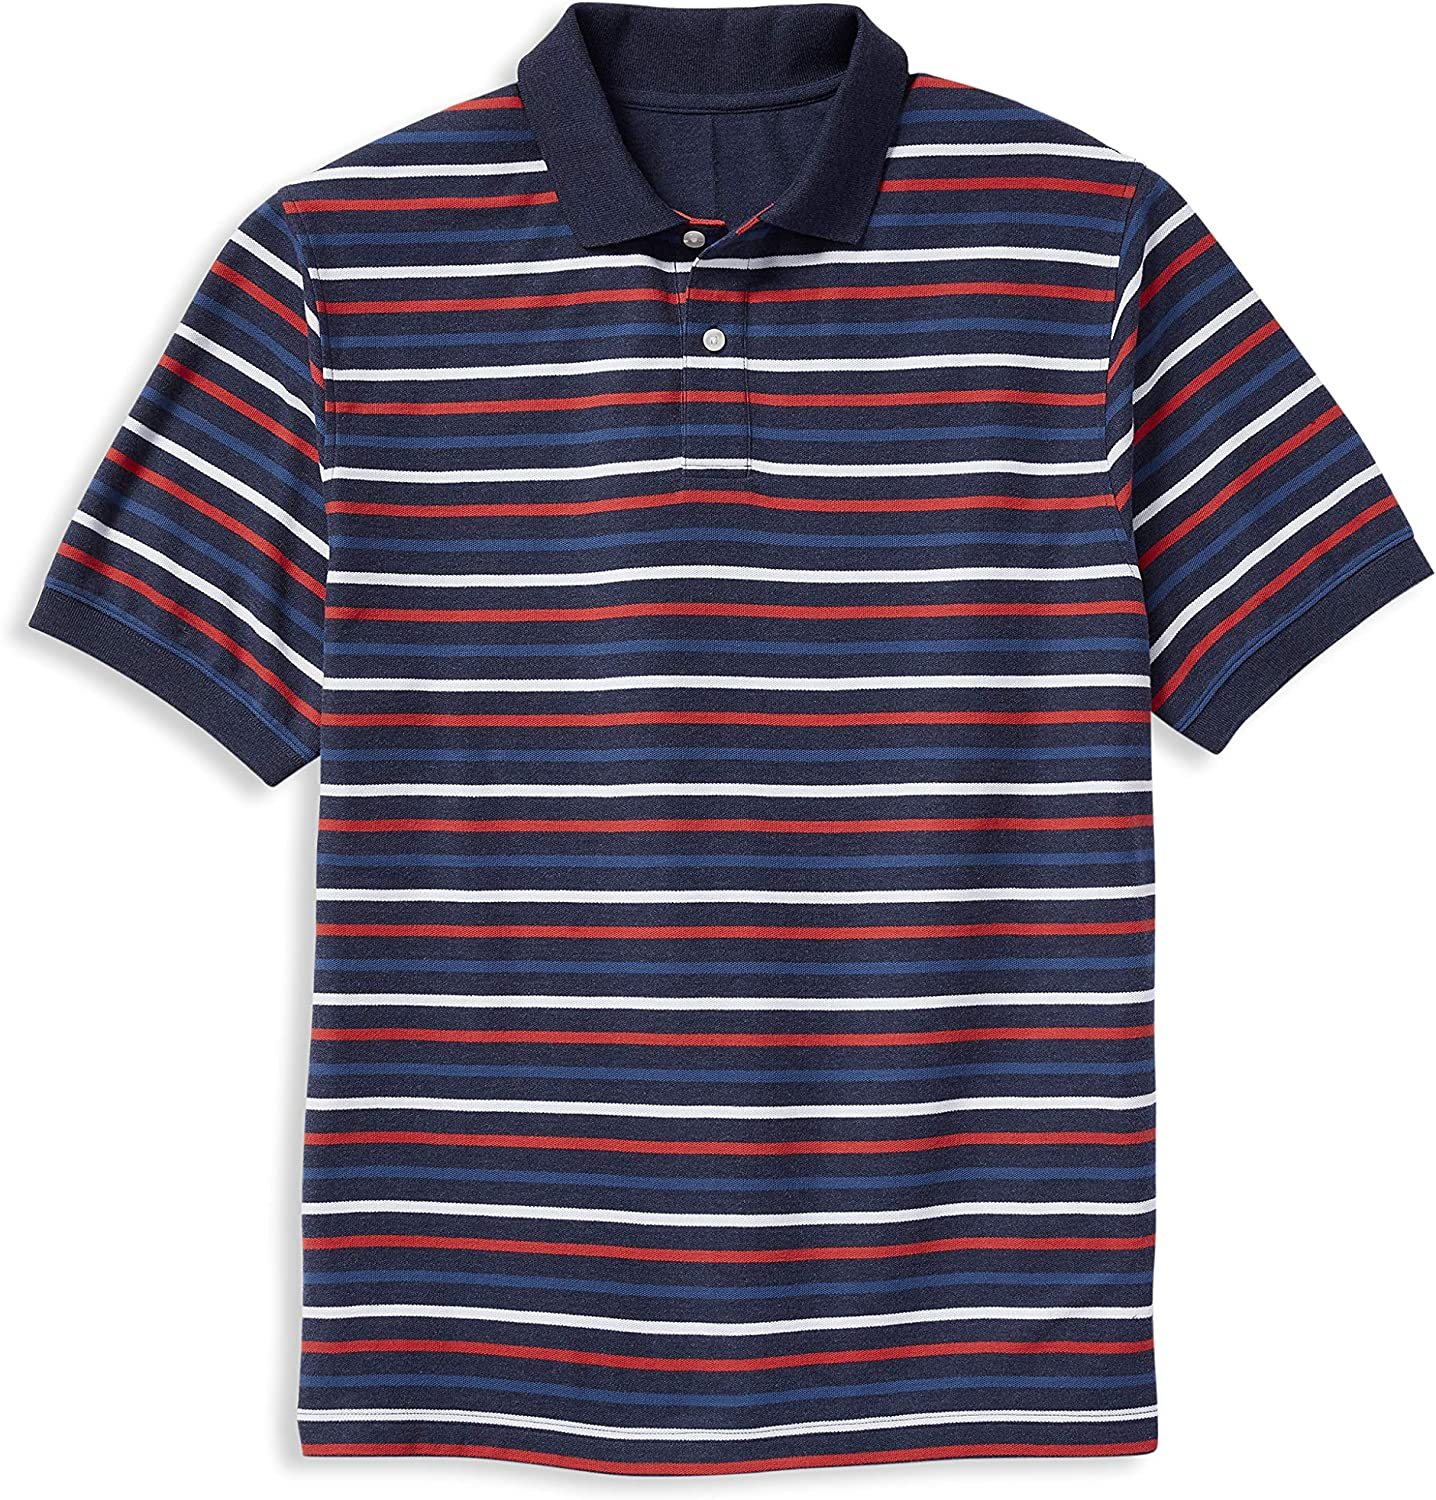 Harbor Bay by DXL Big and Tall Small Multi Stripe Polo Shirt, Blue Multi